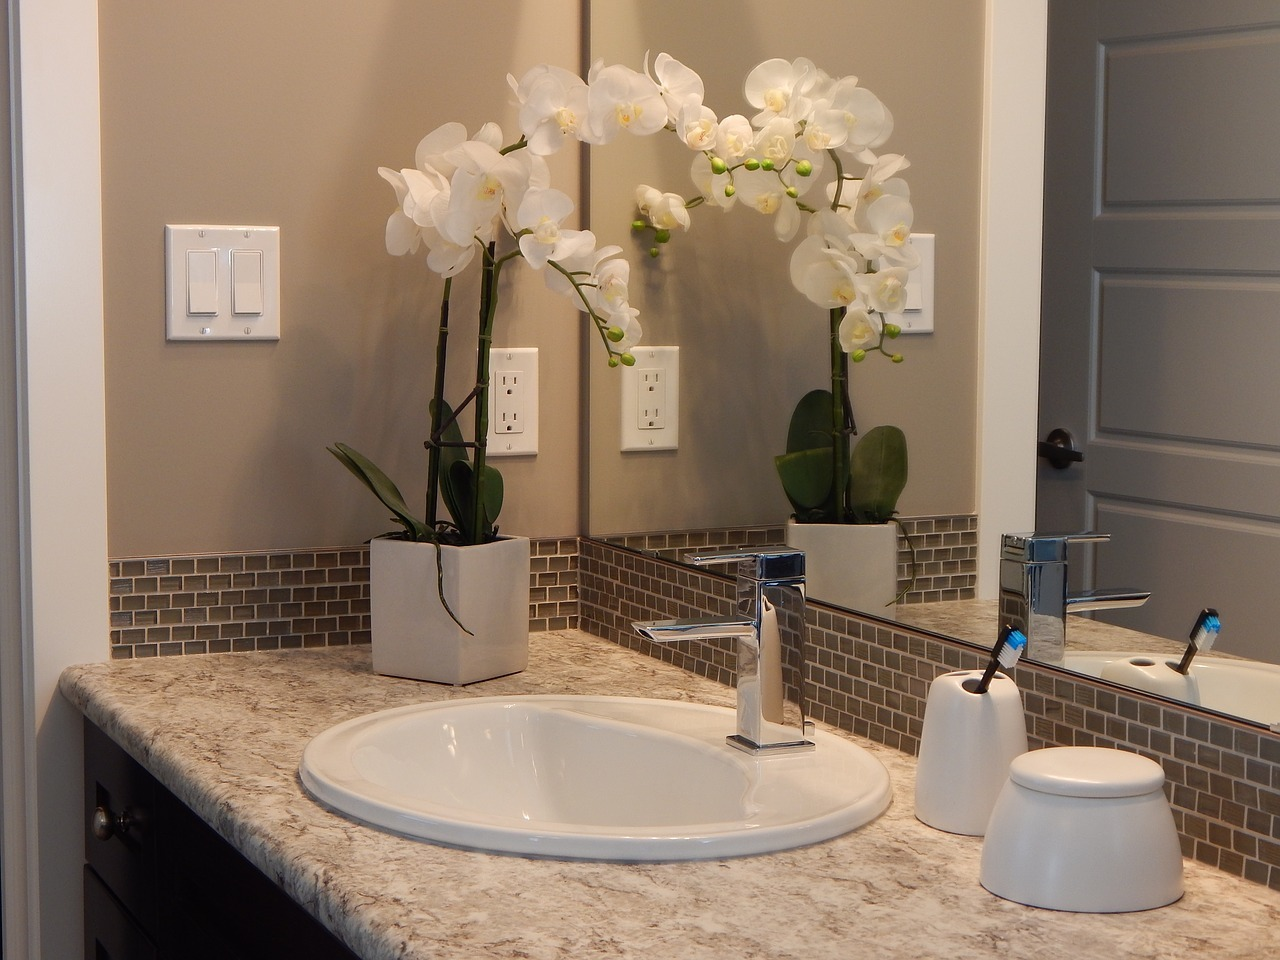 Needham MA Homes for Sale - Showcasing a clean and updated bathroom will attract buyers to your home for sale in Needham.